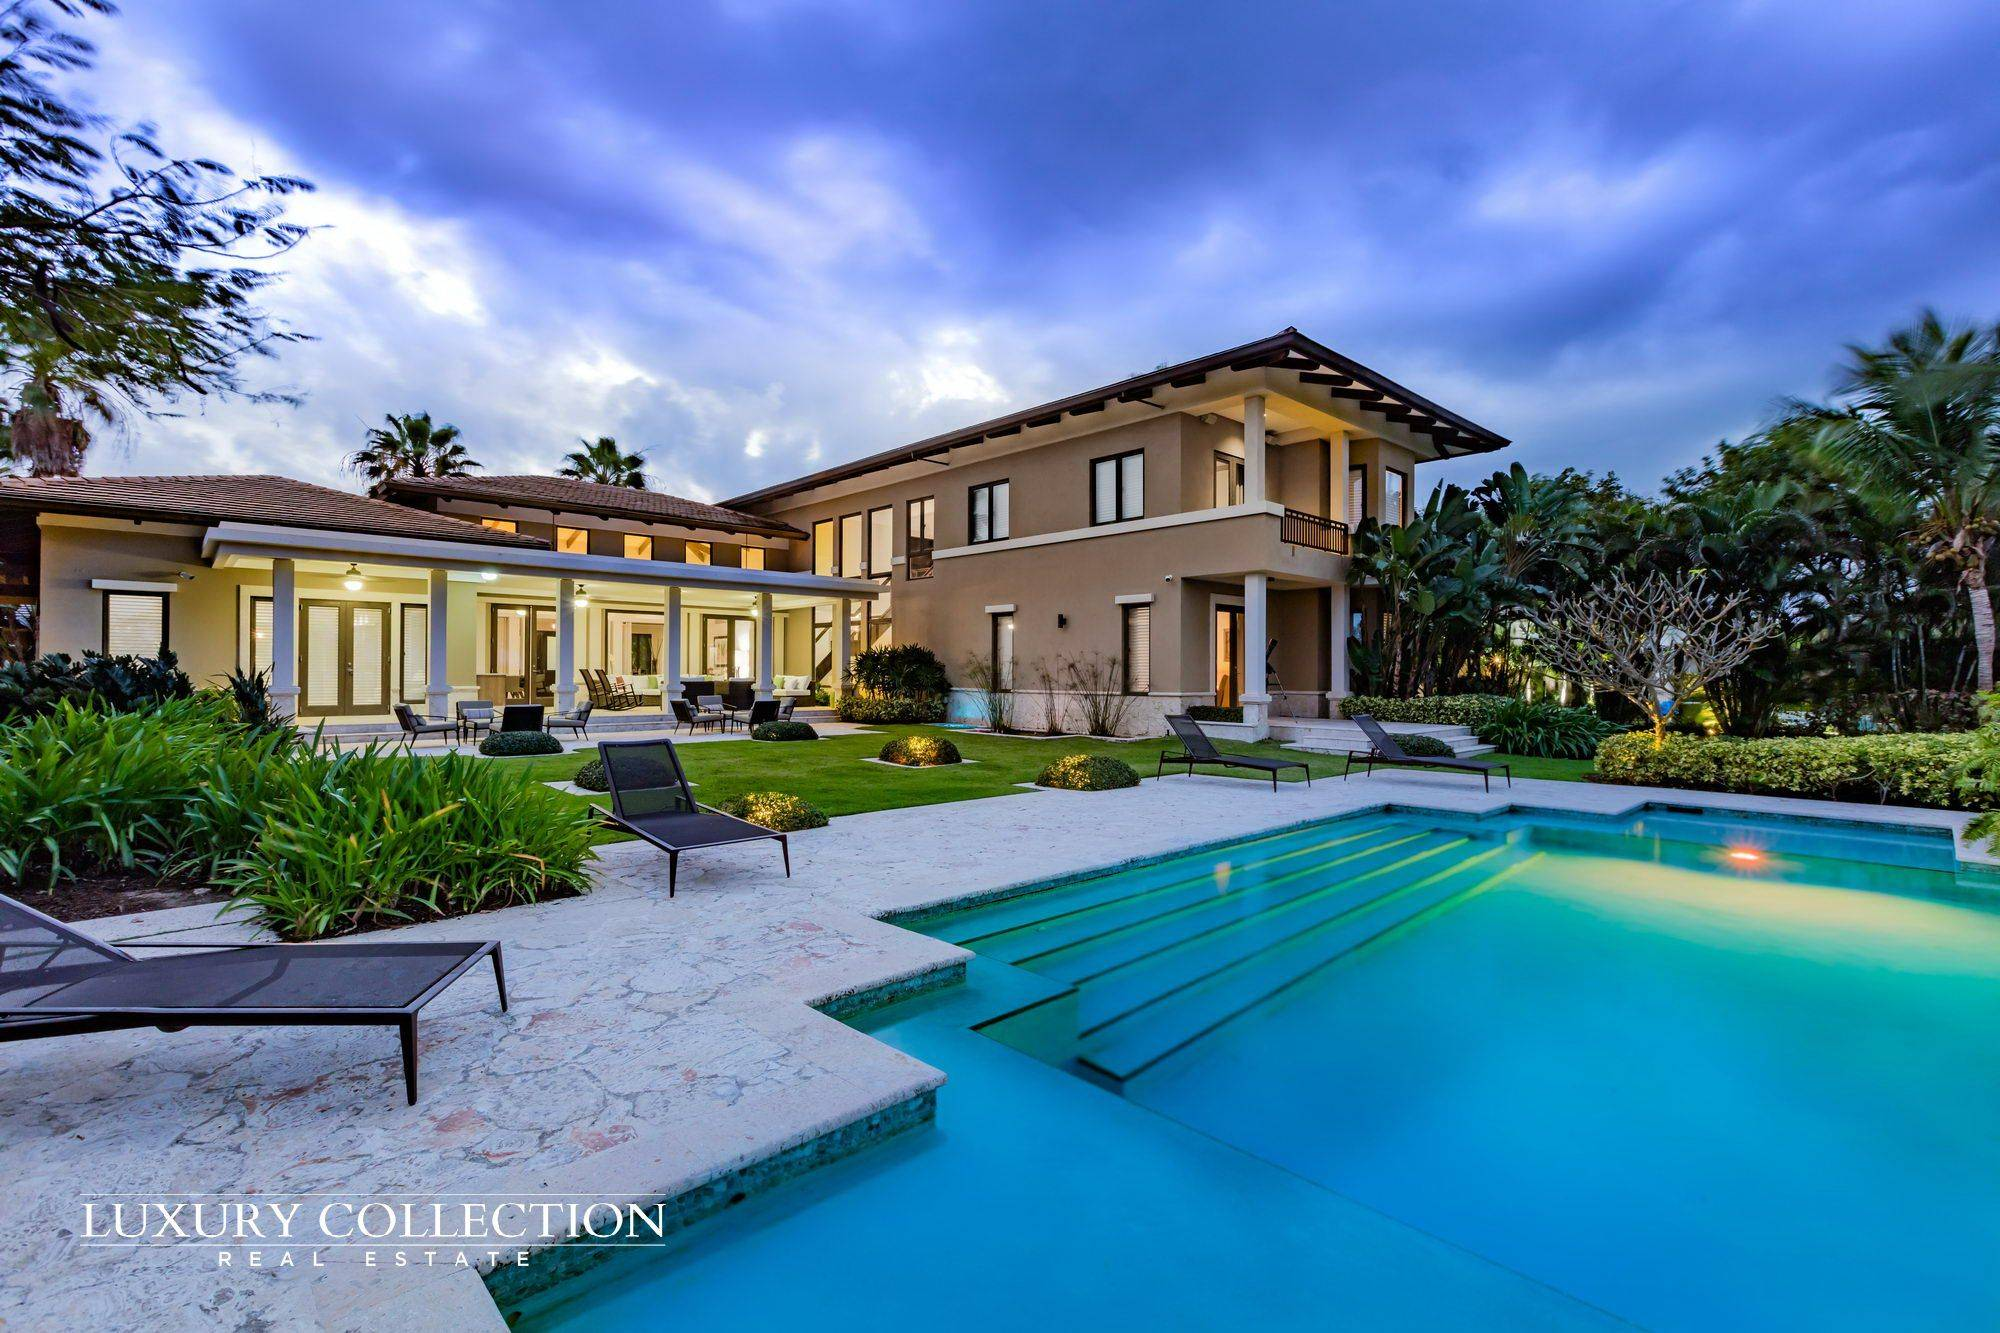 01 luxury collection bahia beach luxury collection real for Luxury home collection